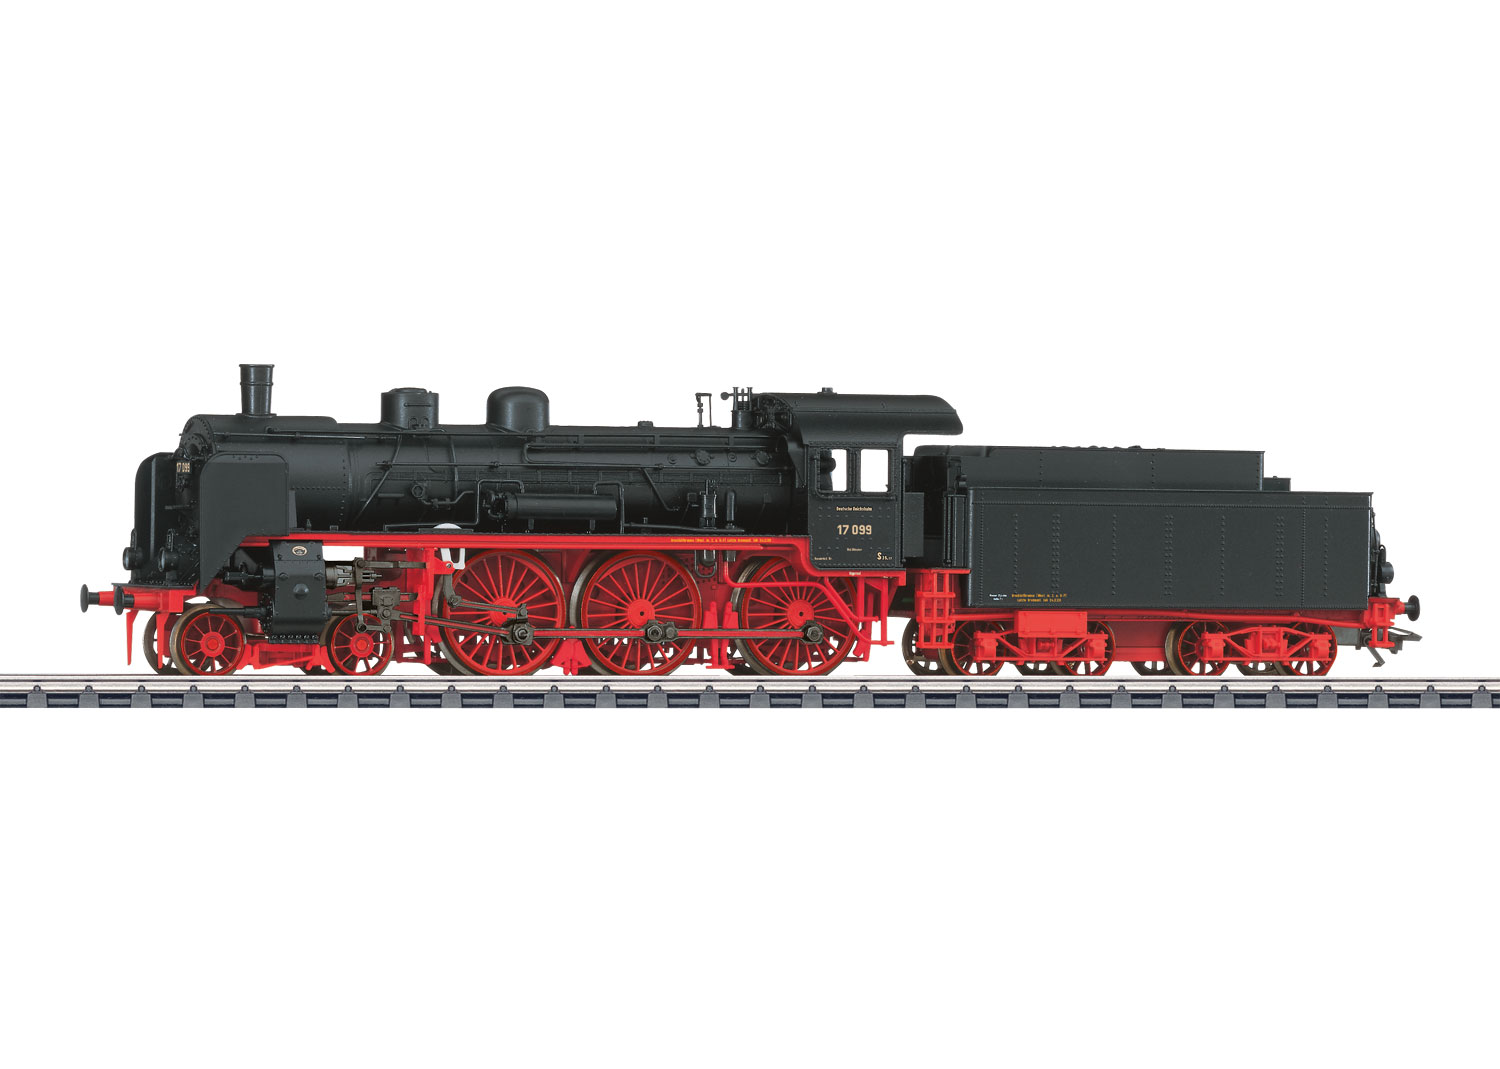 Express Locomotive with a Tender.